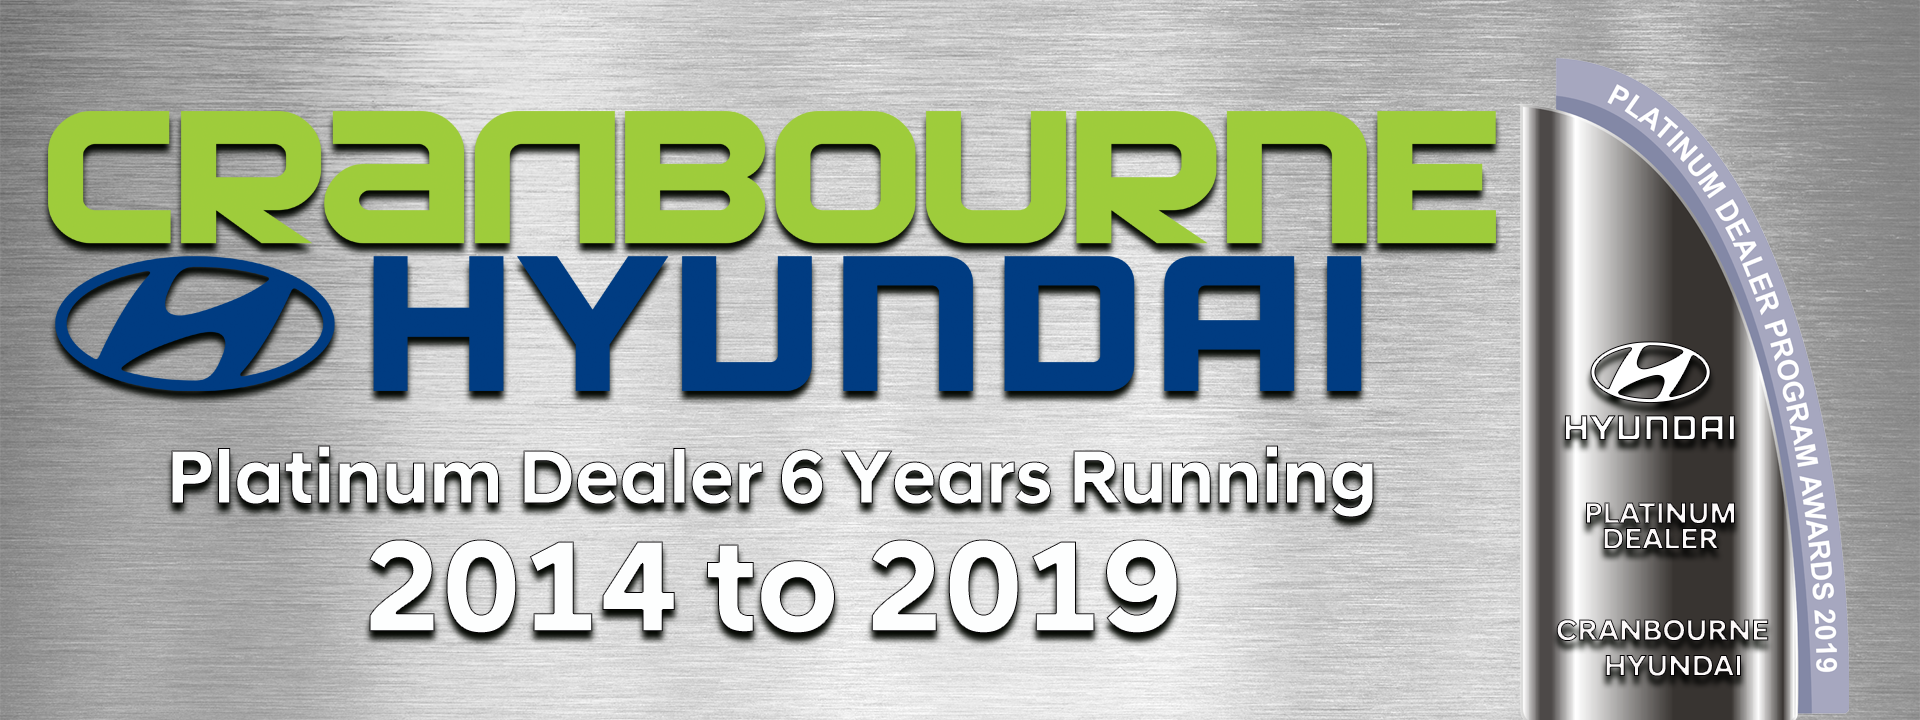 Cranbourne Hyundai Platinum Dealers